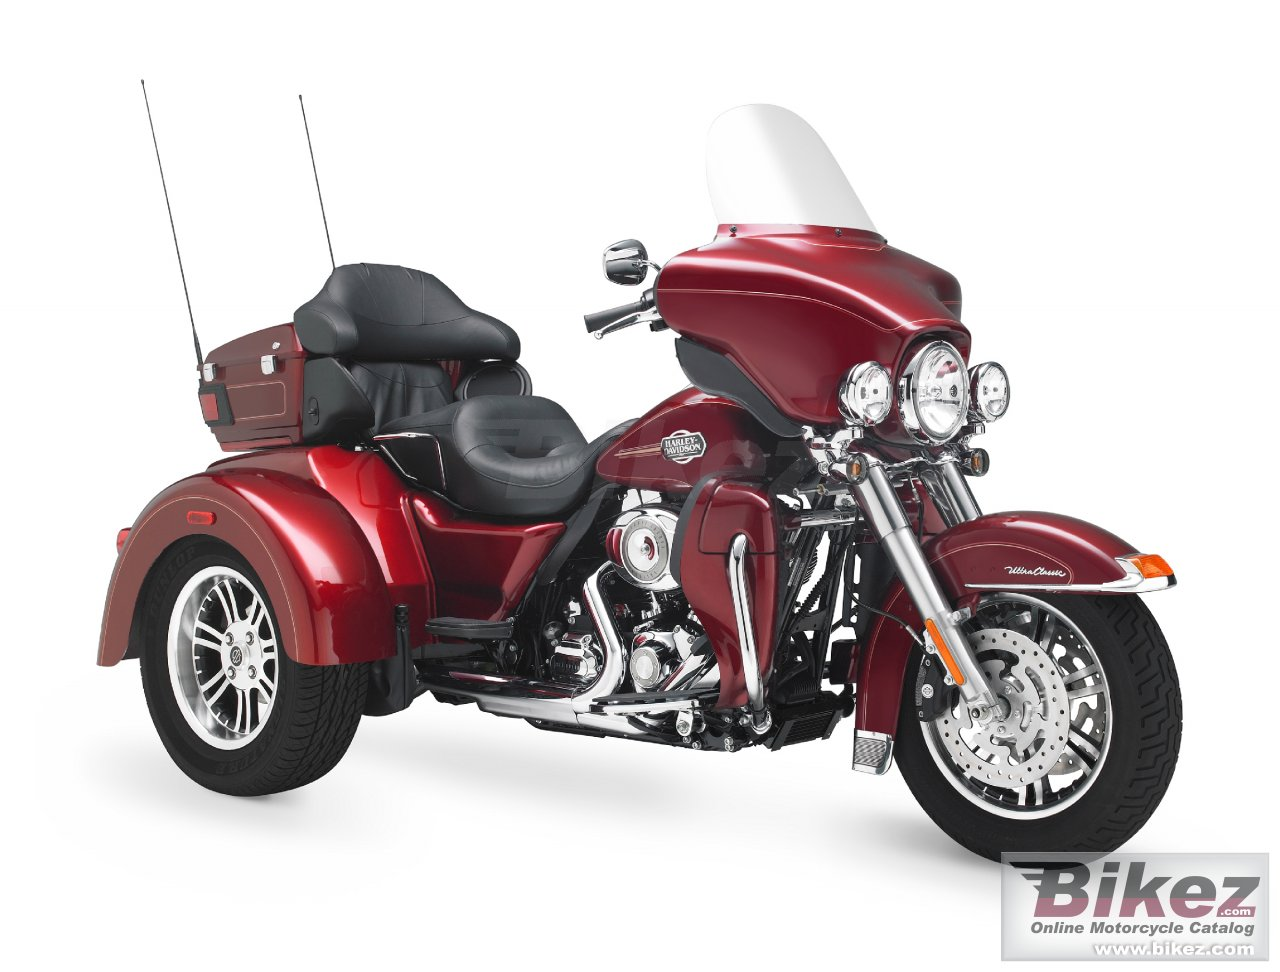 Big Harley-Davidson flhtcutg tri glide ultra classic picture and wallpaper from Bikez.com